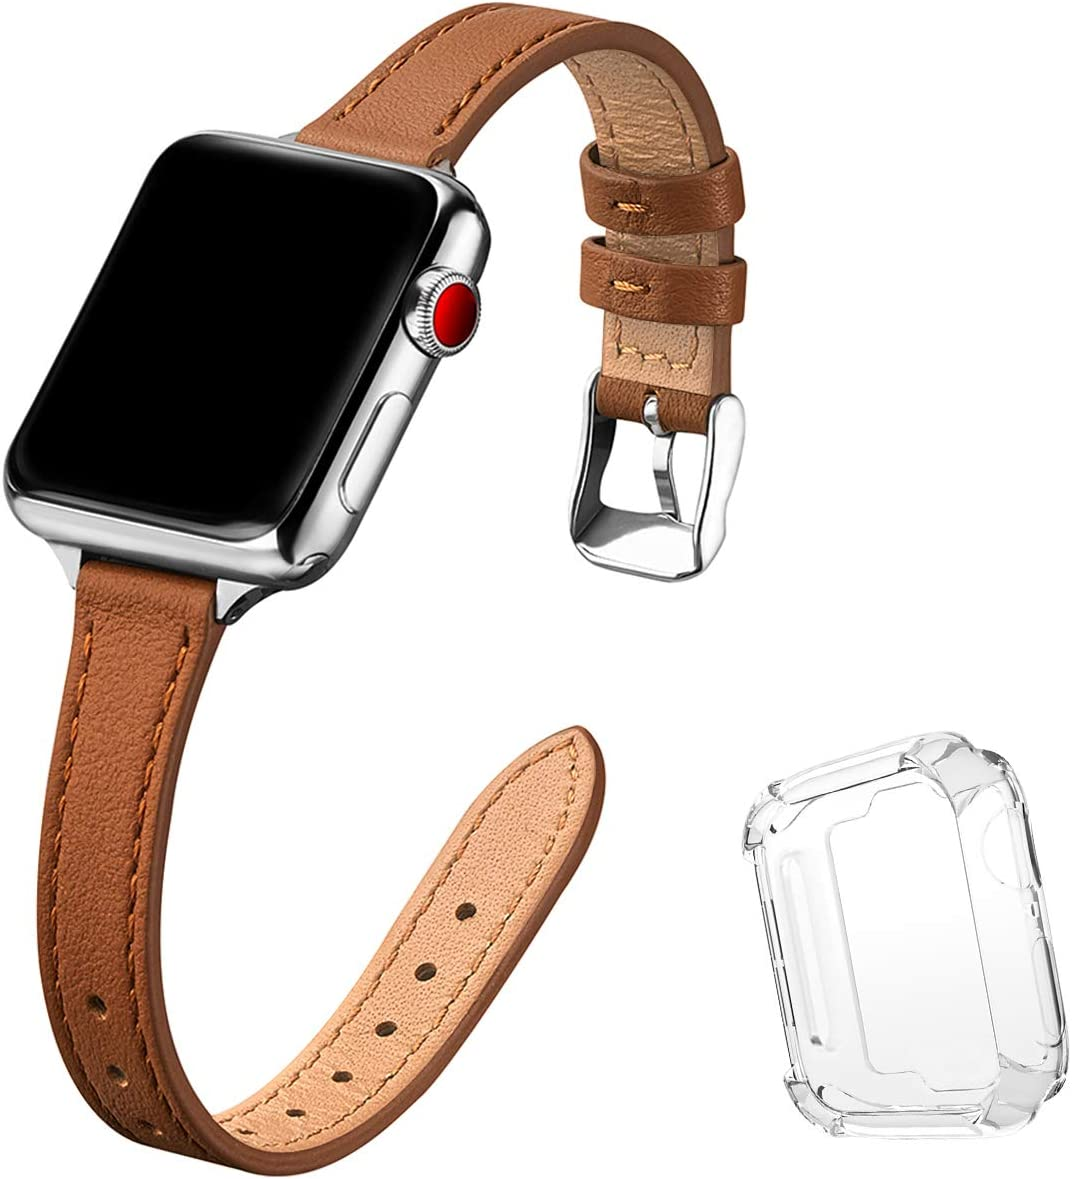 STIROLL Slim Leather Bands Compatible with Apple Watch Band 38mm 40mm 42mm 44mm, Top Grain Leather Watch Thin Wristband for iWatch SE Series 6/5/4/3/2/1 (Brown with Silver, 42mm/44mm)